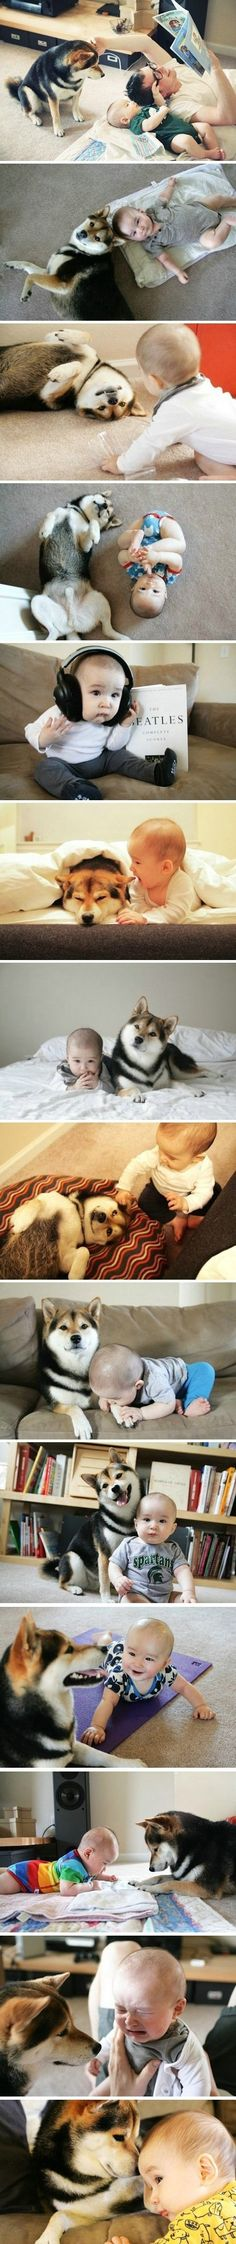 FRIEND...adorable Shiba Inu and baby!! I might have to have another Shiba eventually <3